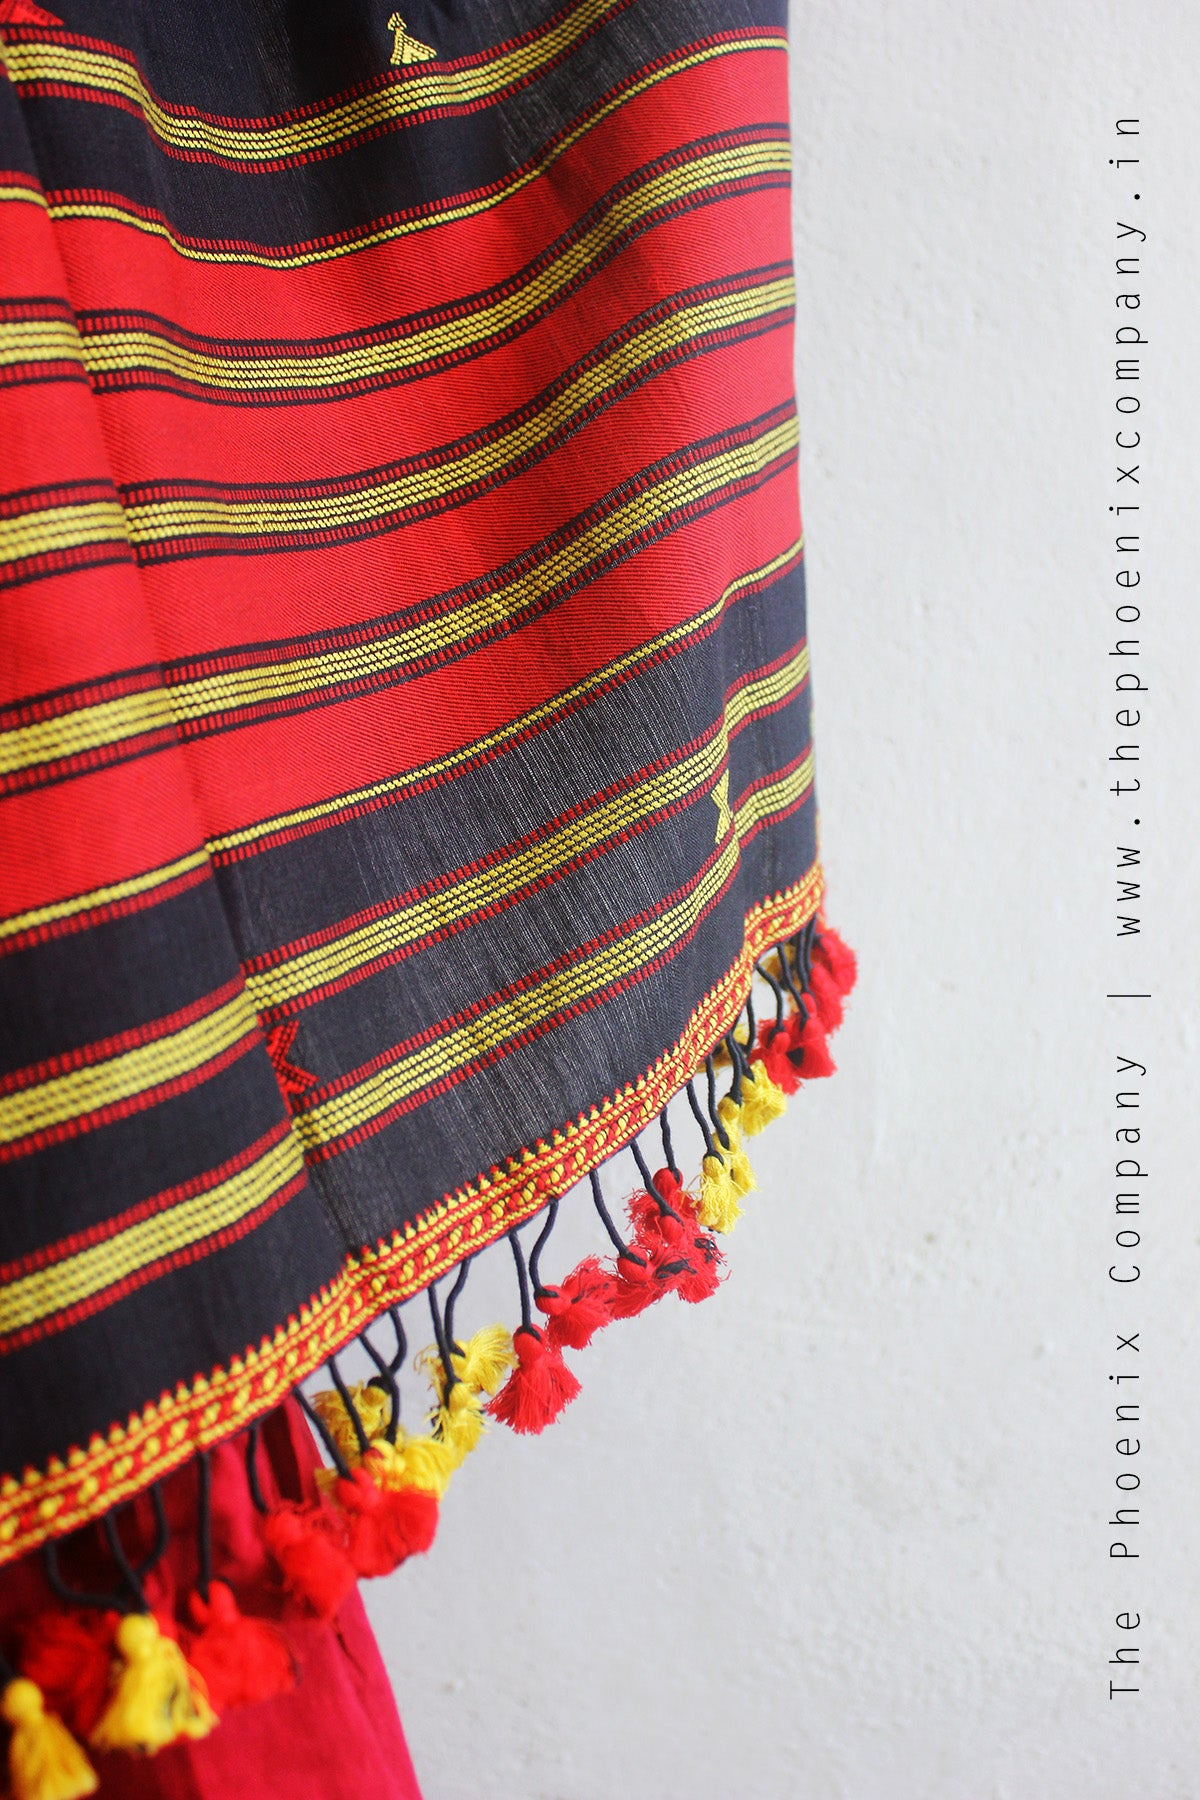 New On the Block - Handwoven Bhujodi Dupattas